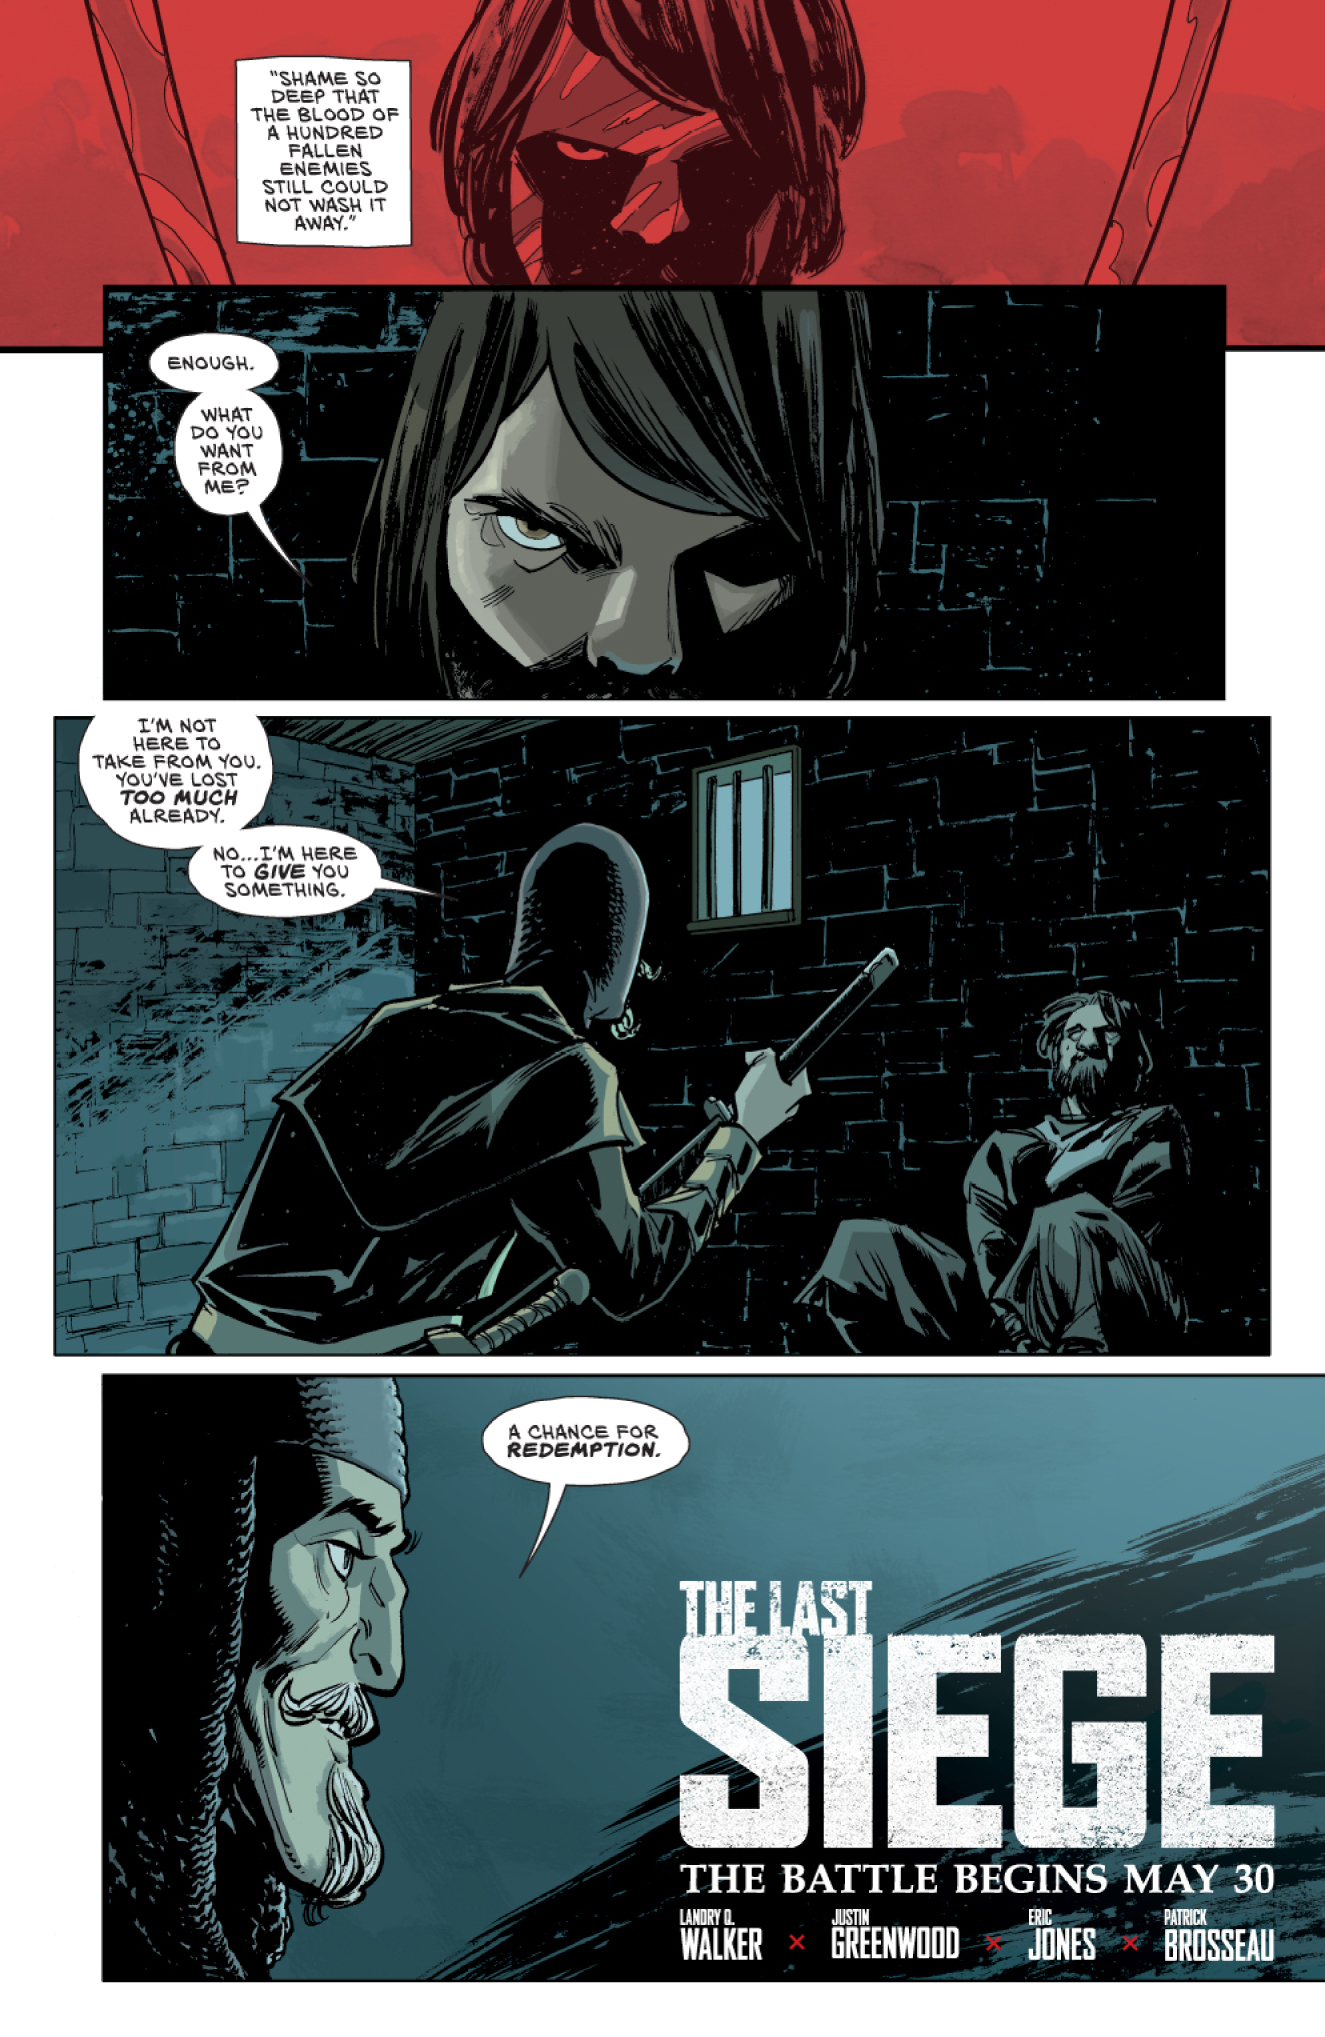 THE LAST SIEGE Prelude colors by Justin Greenwood and Brad Simpson